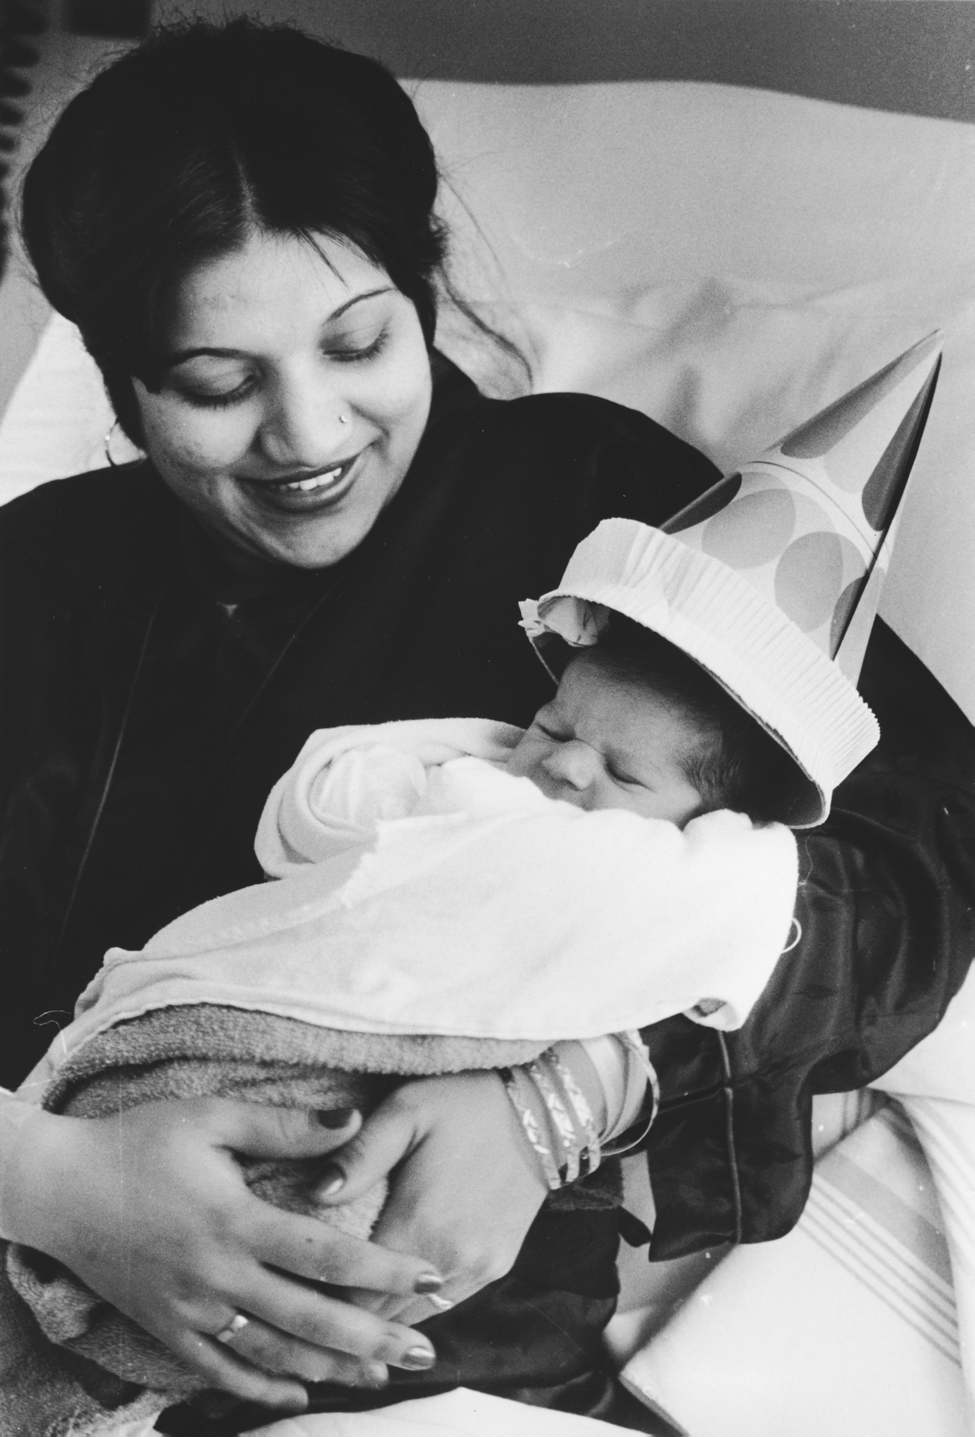 Harjit Kaur Singh celebrates New Year's Day with her son, Winnipeg's first baby of 1985. The as yet unnamed son of Harjit Singh and Harjit Kaur Singh was born at 12:32 a.m. at the St. Boniface General Hospital and weighed six pounds, 6.5 ounces.